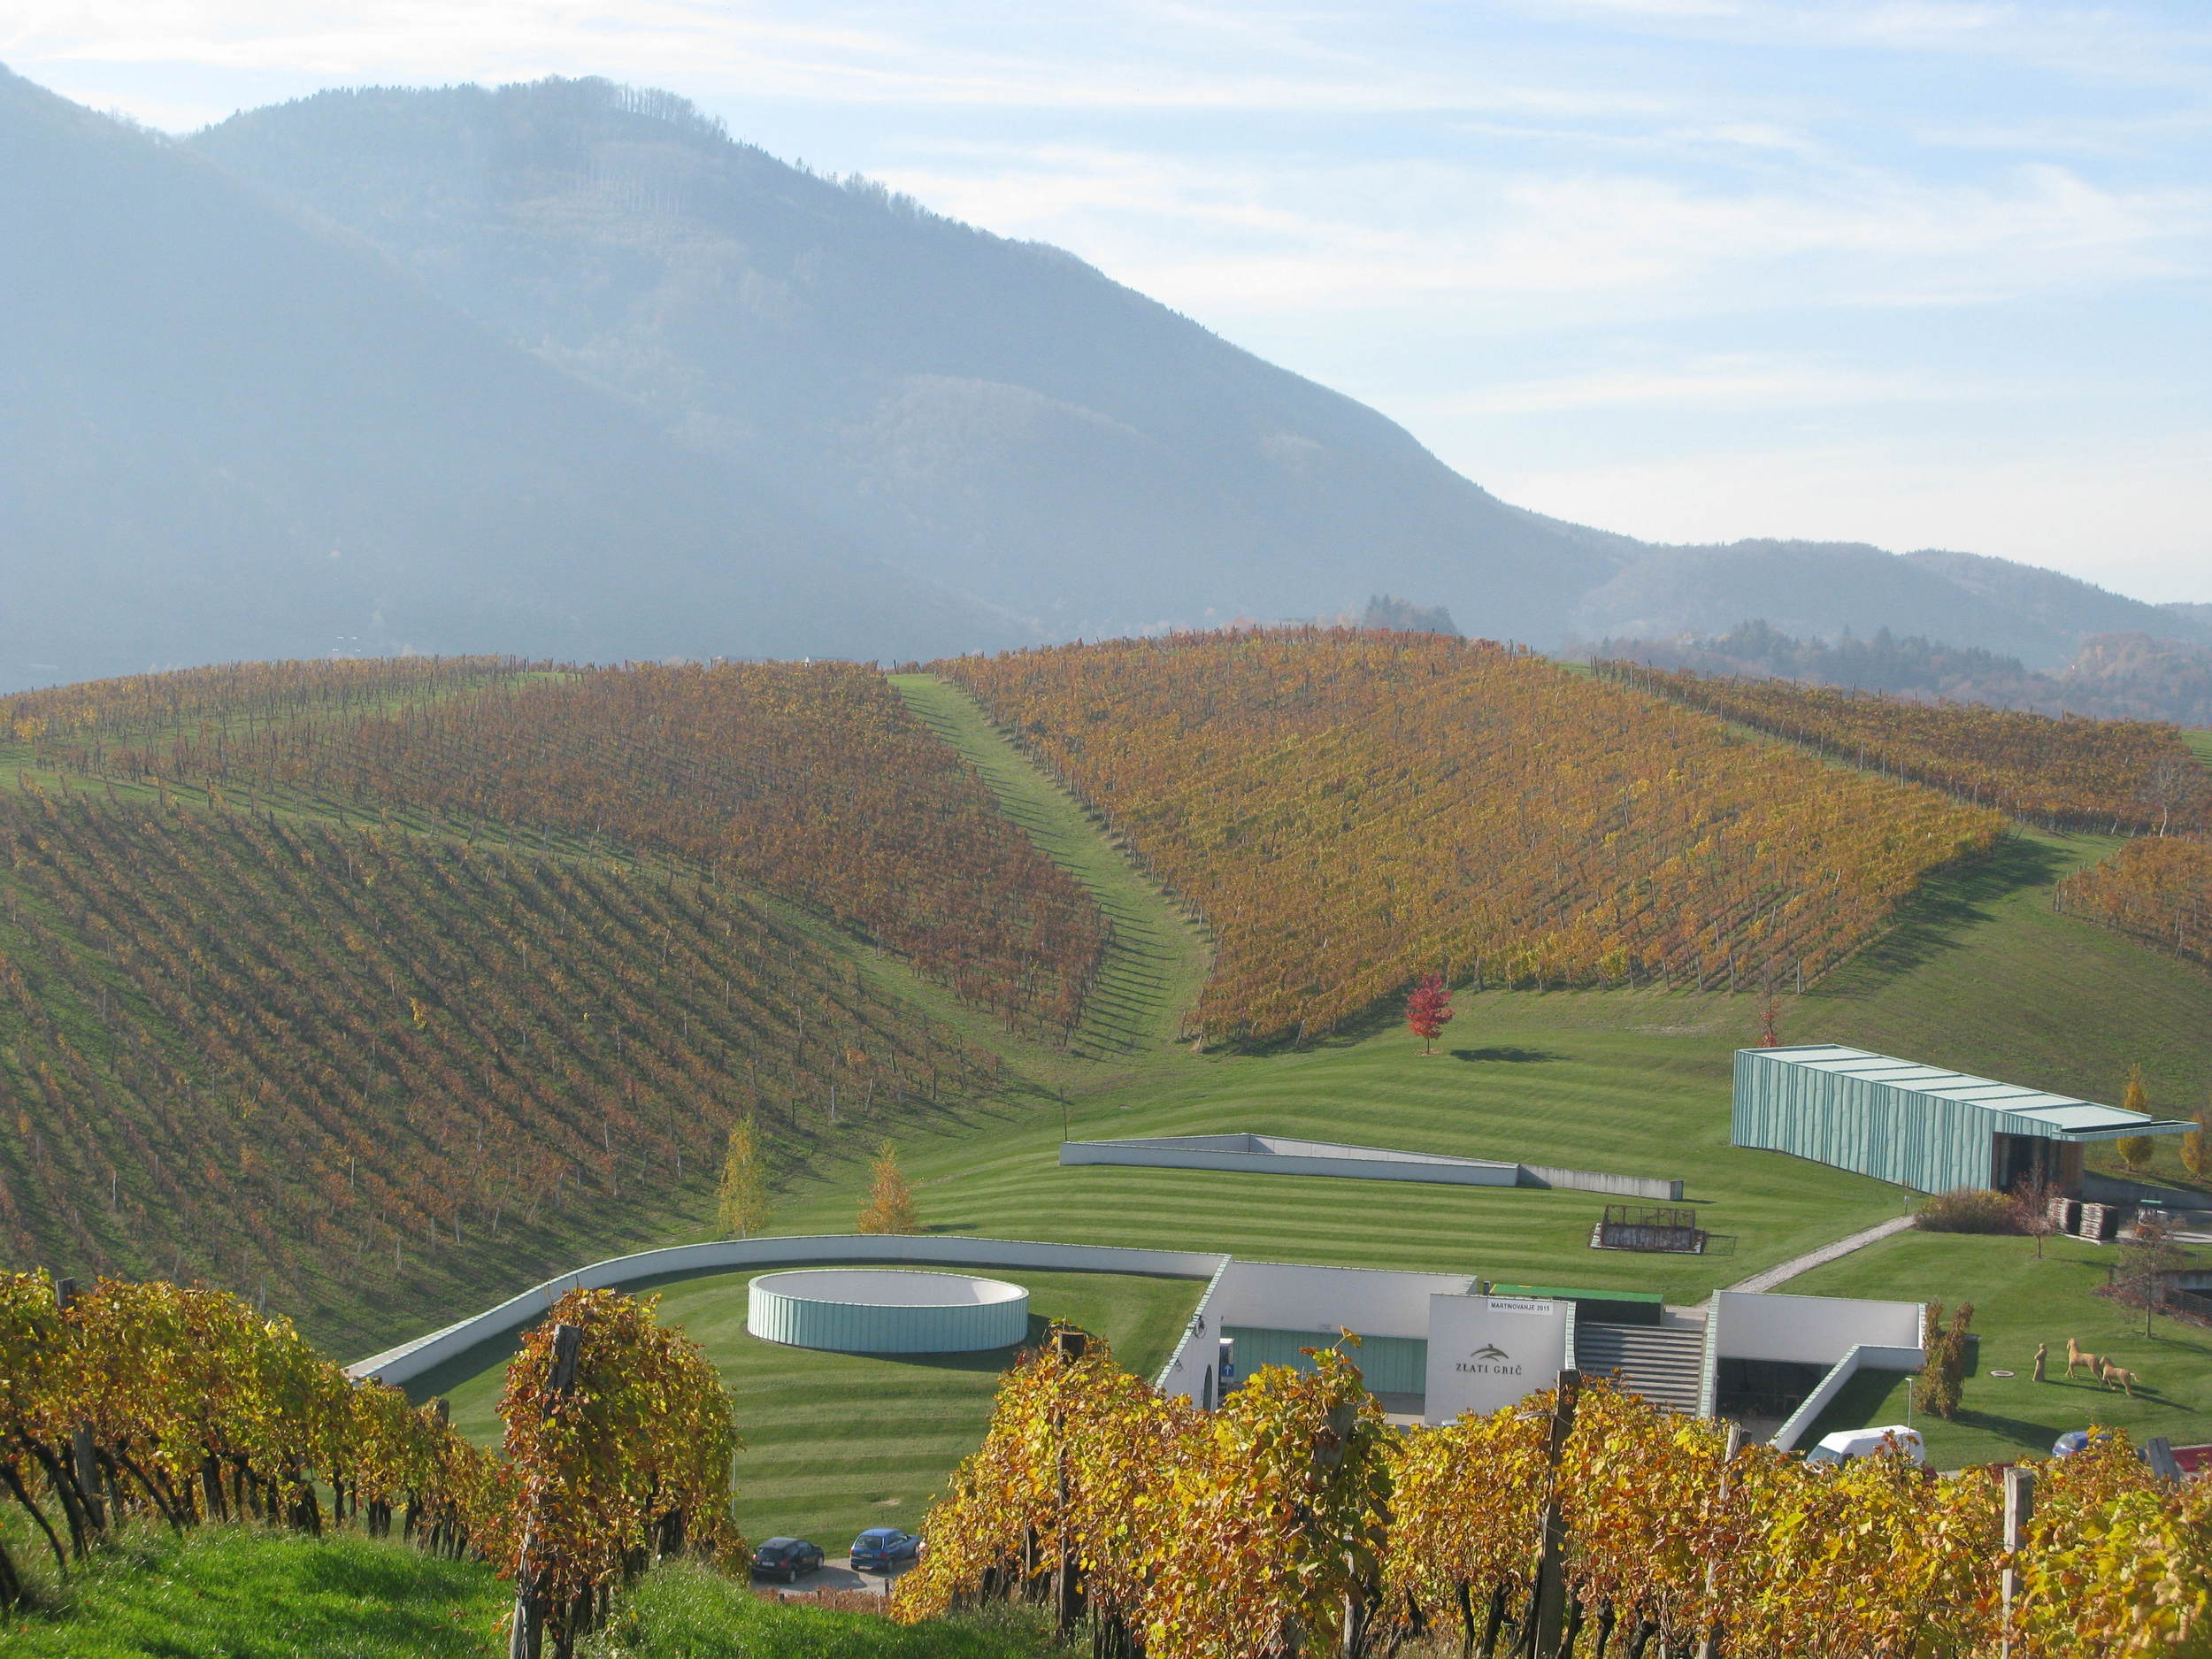 A spectacular setting for a winery... and wine tasting